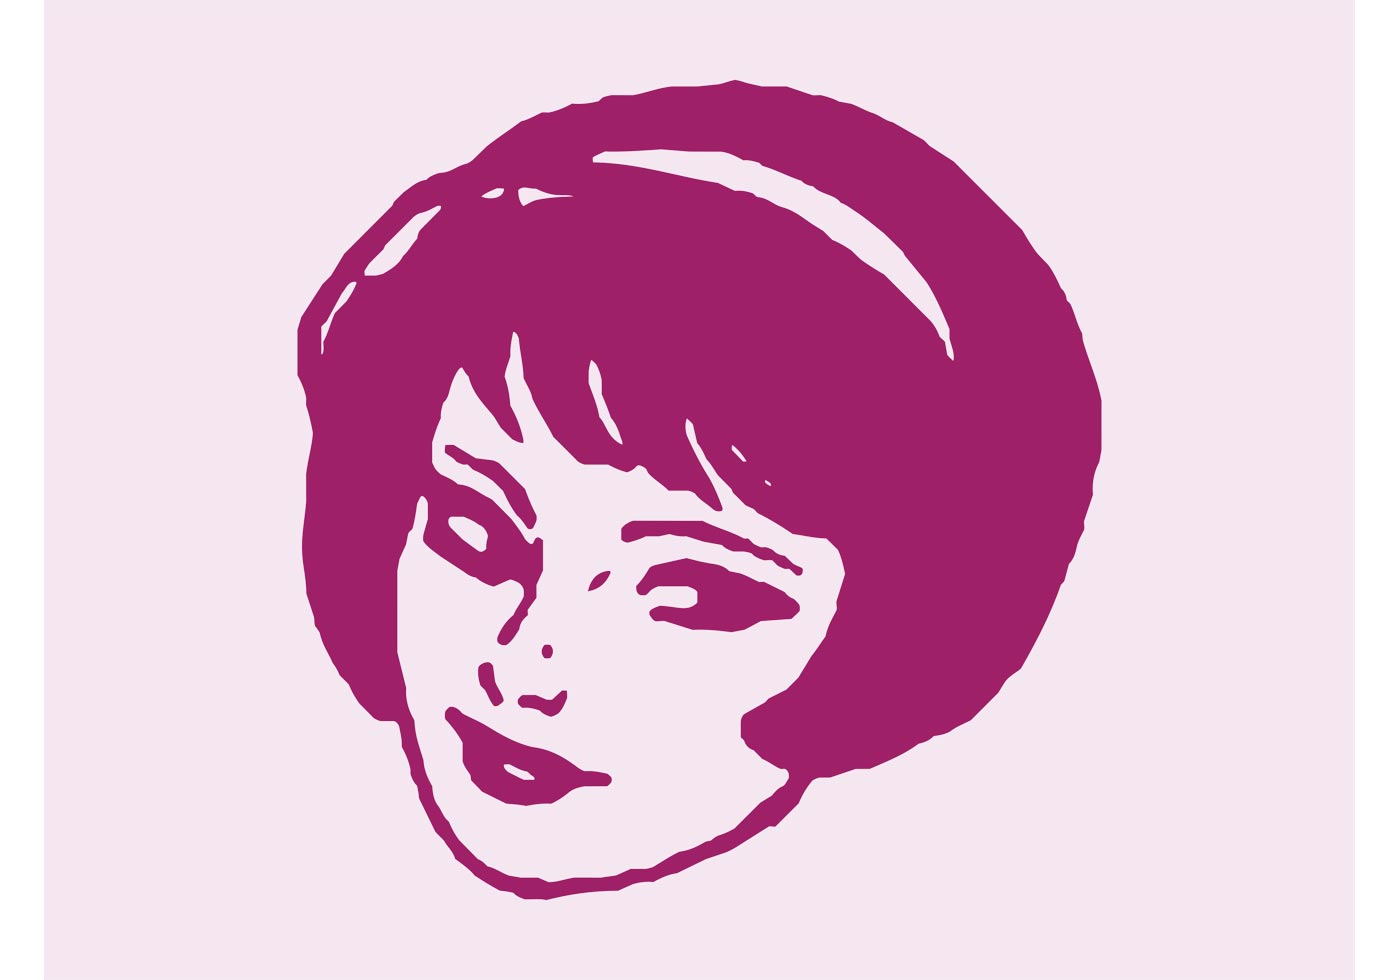 Retro Girl - Download Free Vector Art, Stock Graphics & Images